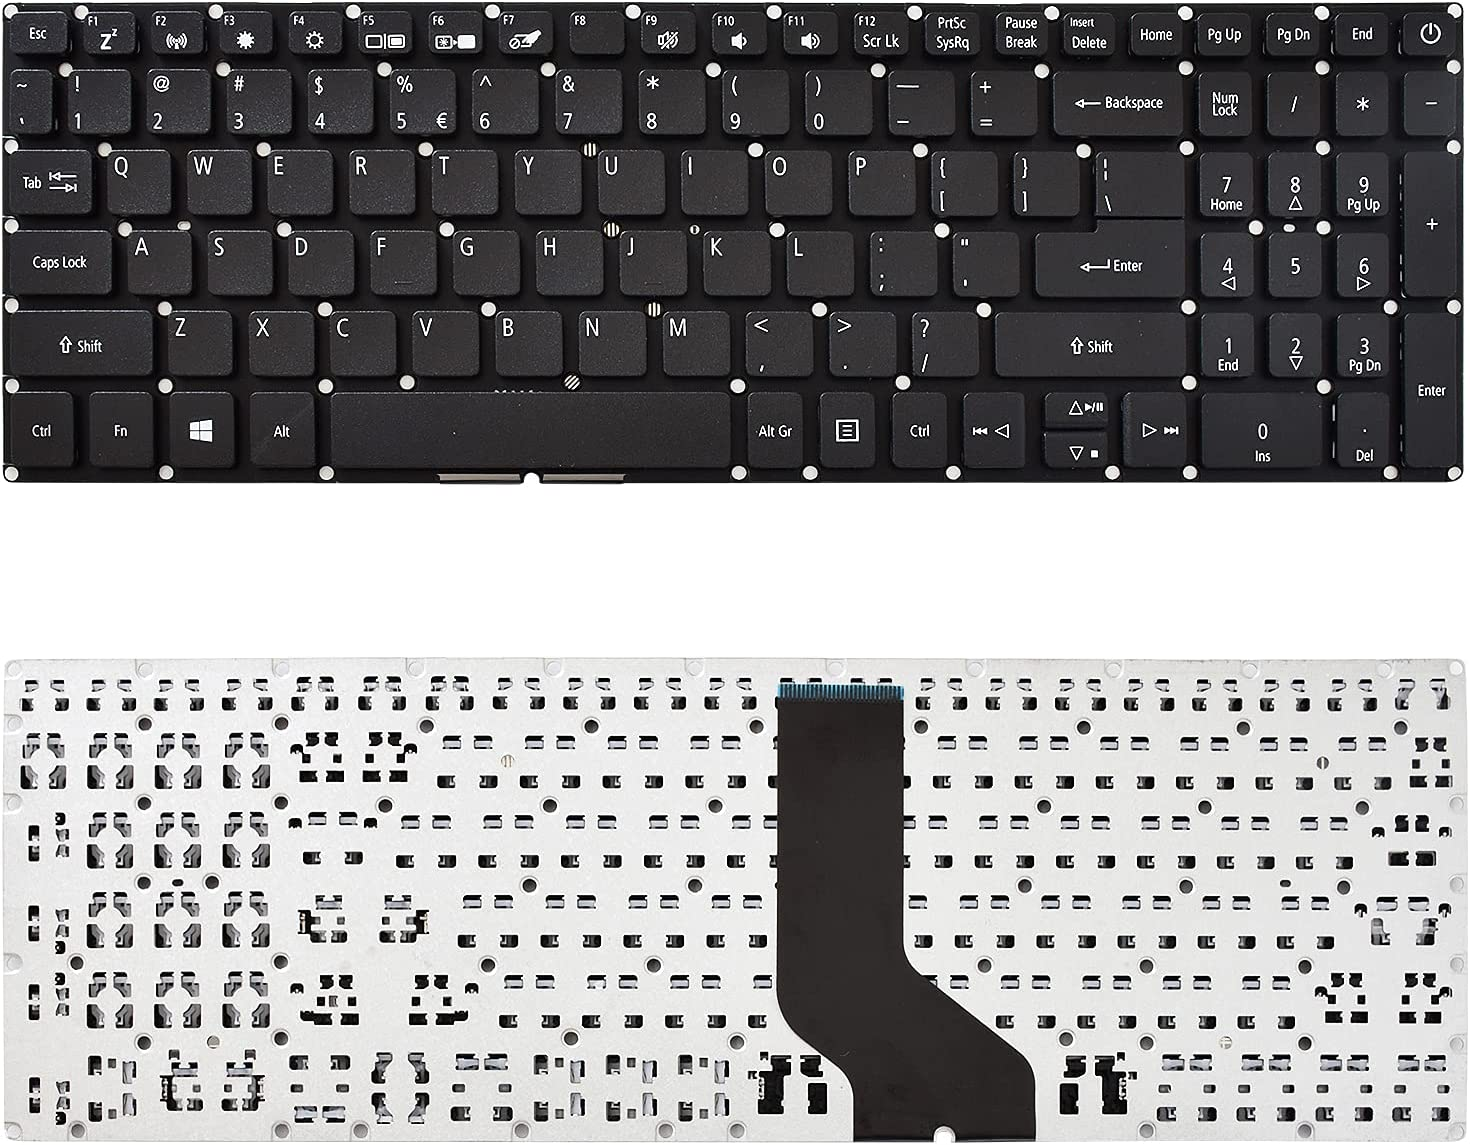 SUNMALL Replacement Keyboard Compatible with Acer Aspire 3 A315-34 A315-41 A315-53.Aspire 7 A715-72G Black US Layout